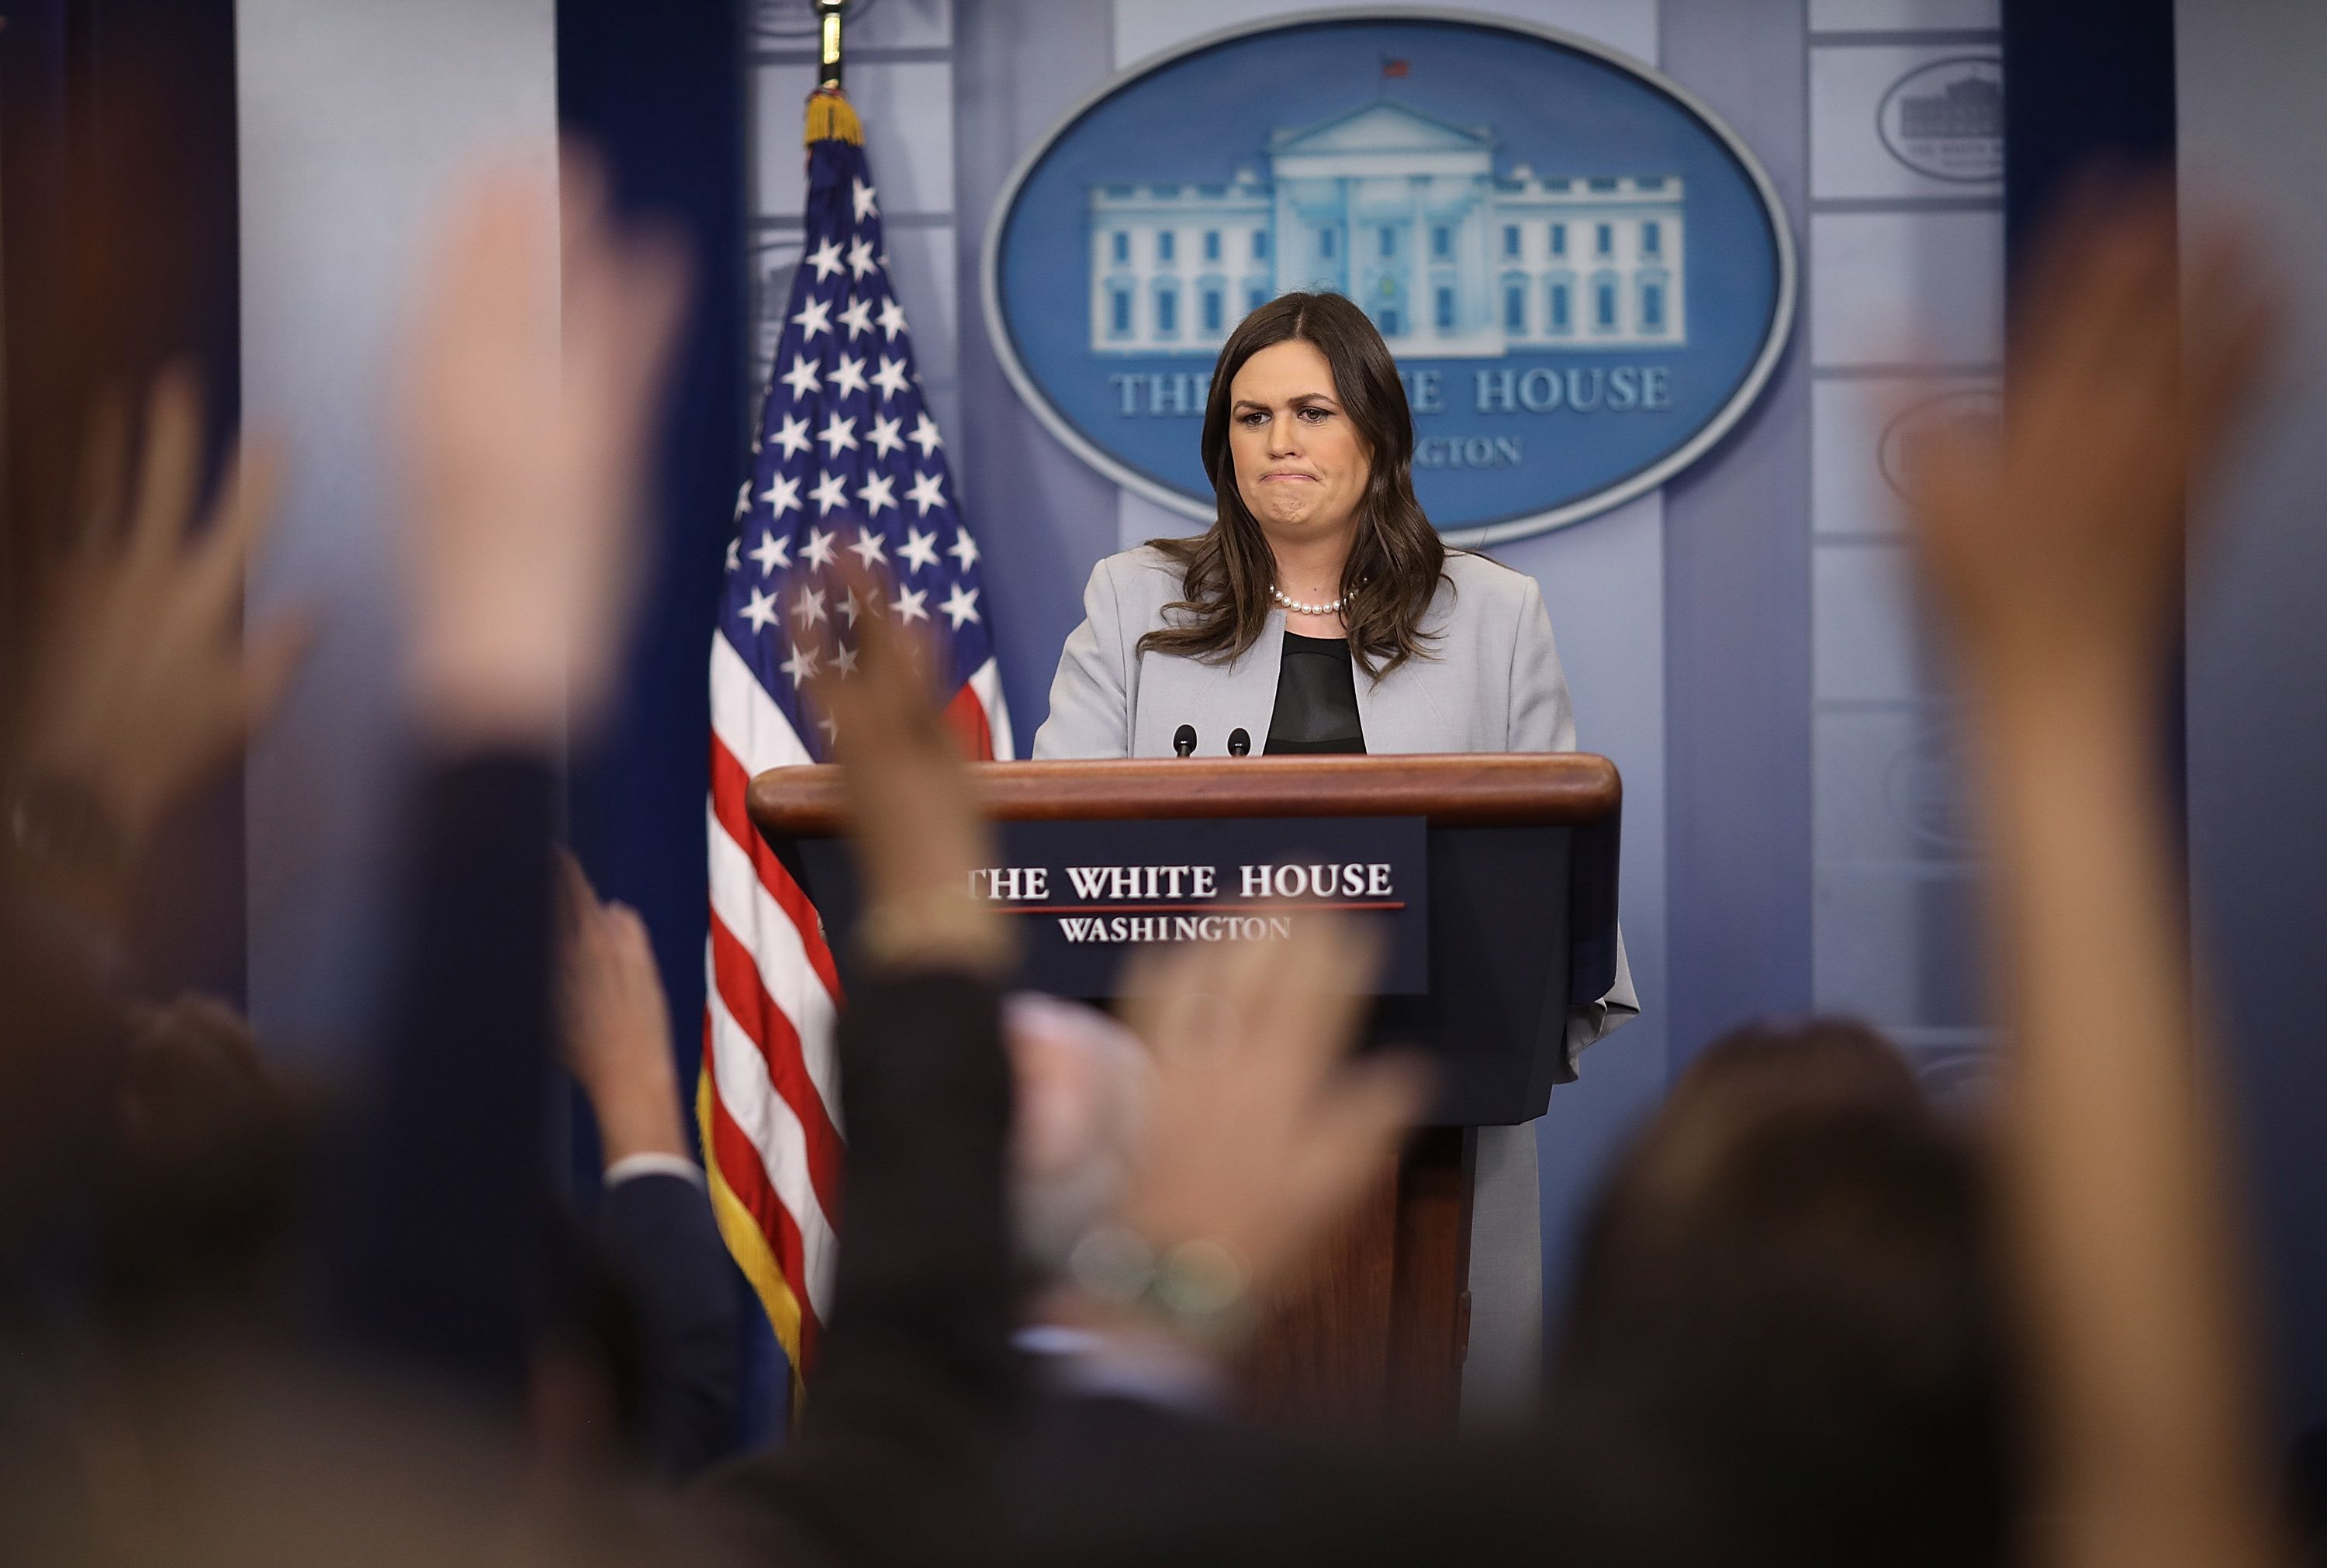 WASHINGTON, DC - MARCH 07:  White House Press Secretary Sarah Huckabee Sanders answers questions during a briefing at the White House on March 7, 2018 in Washington, DC. Sanders answered a range of questions related to recently announced trade tariffs, allegations by porn star Stormy Daniels and continued resignations by members of the White House staff.  (Photo by Win McNamee/Getty Images)